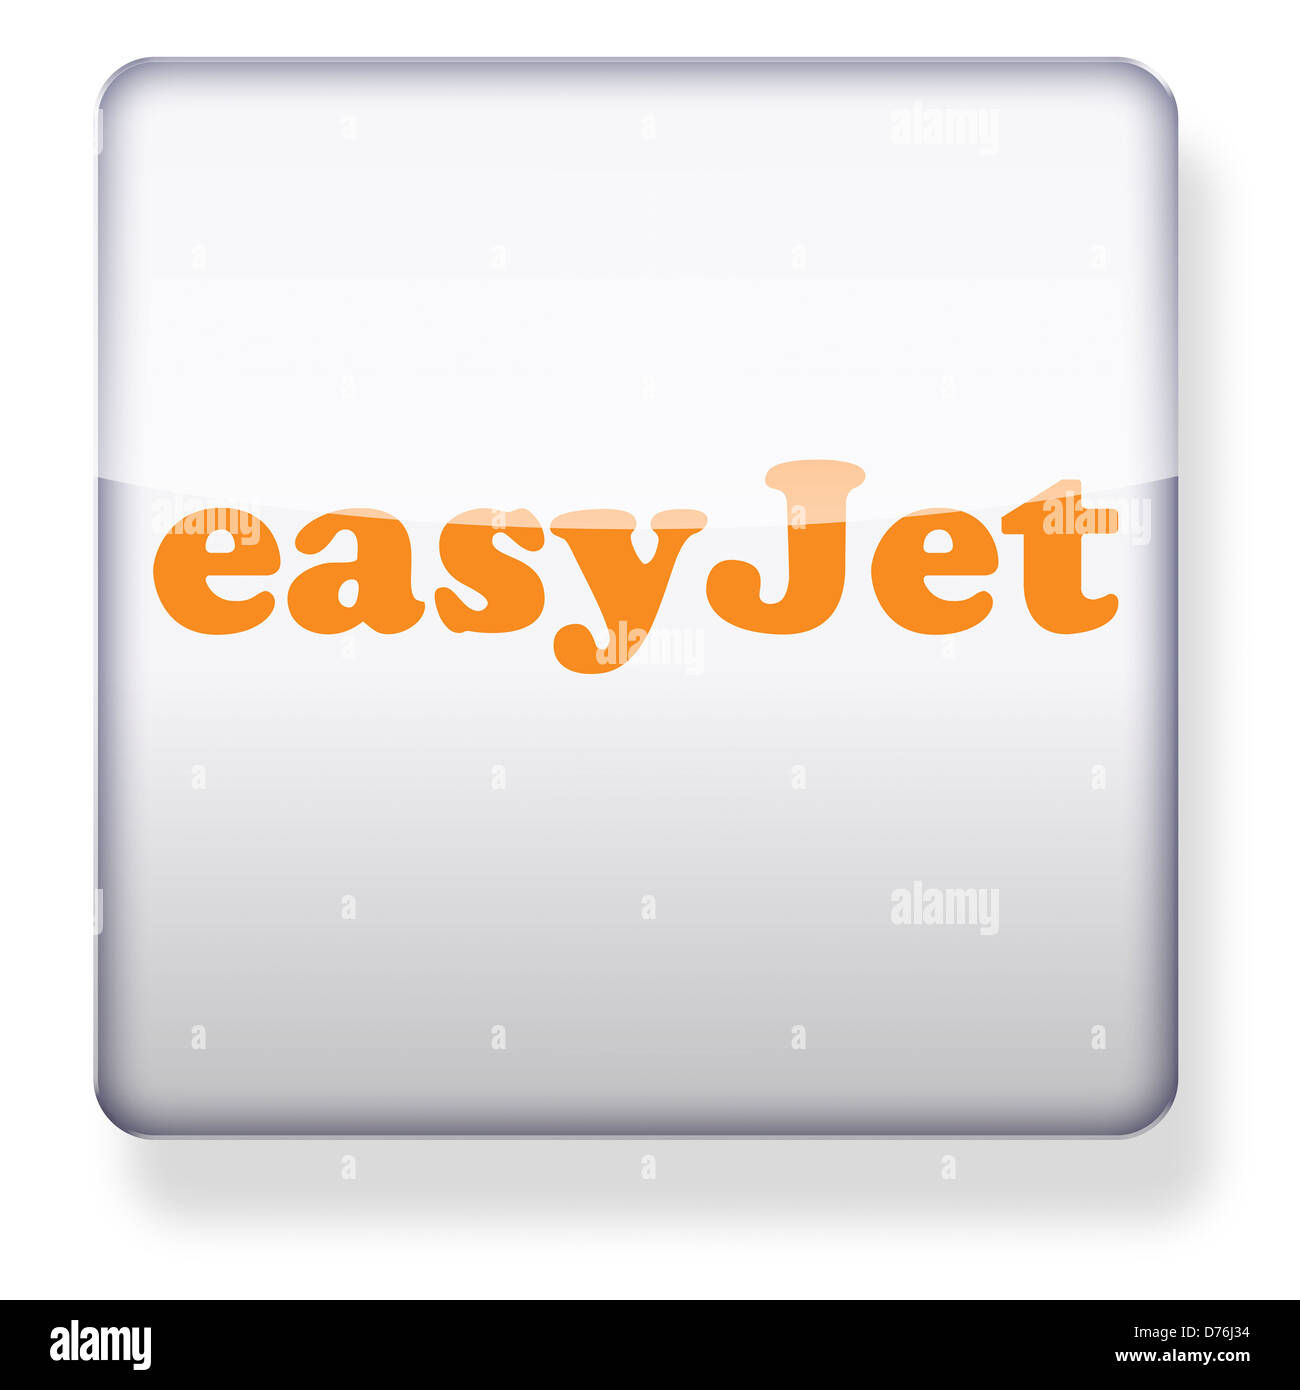 easyjet logo as an app icon. Clipping path included. - Stock Image